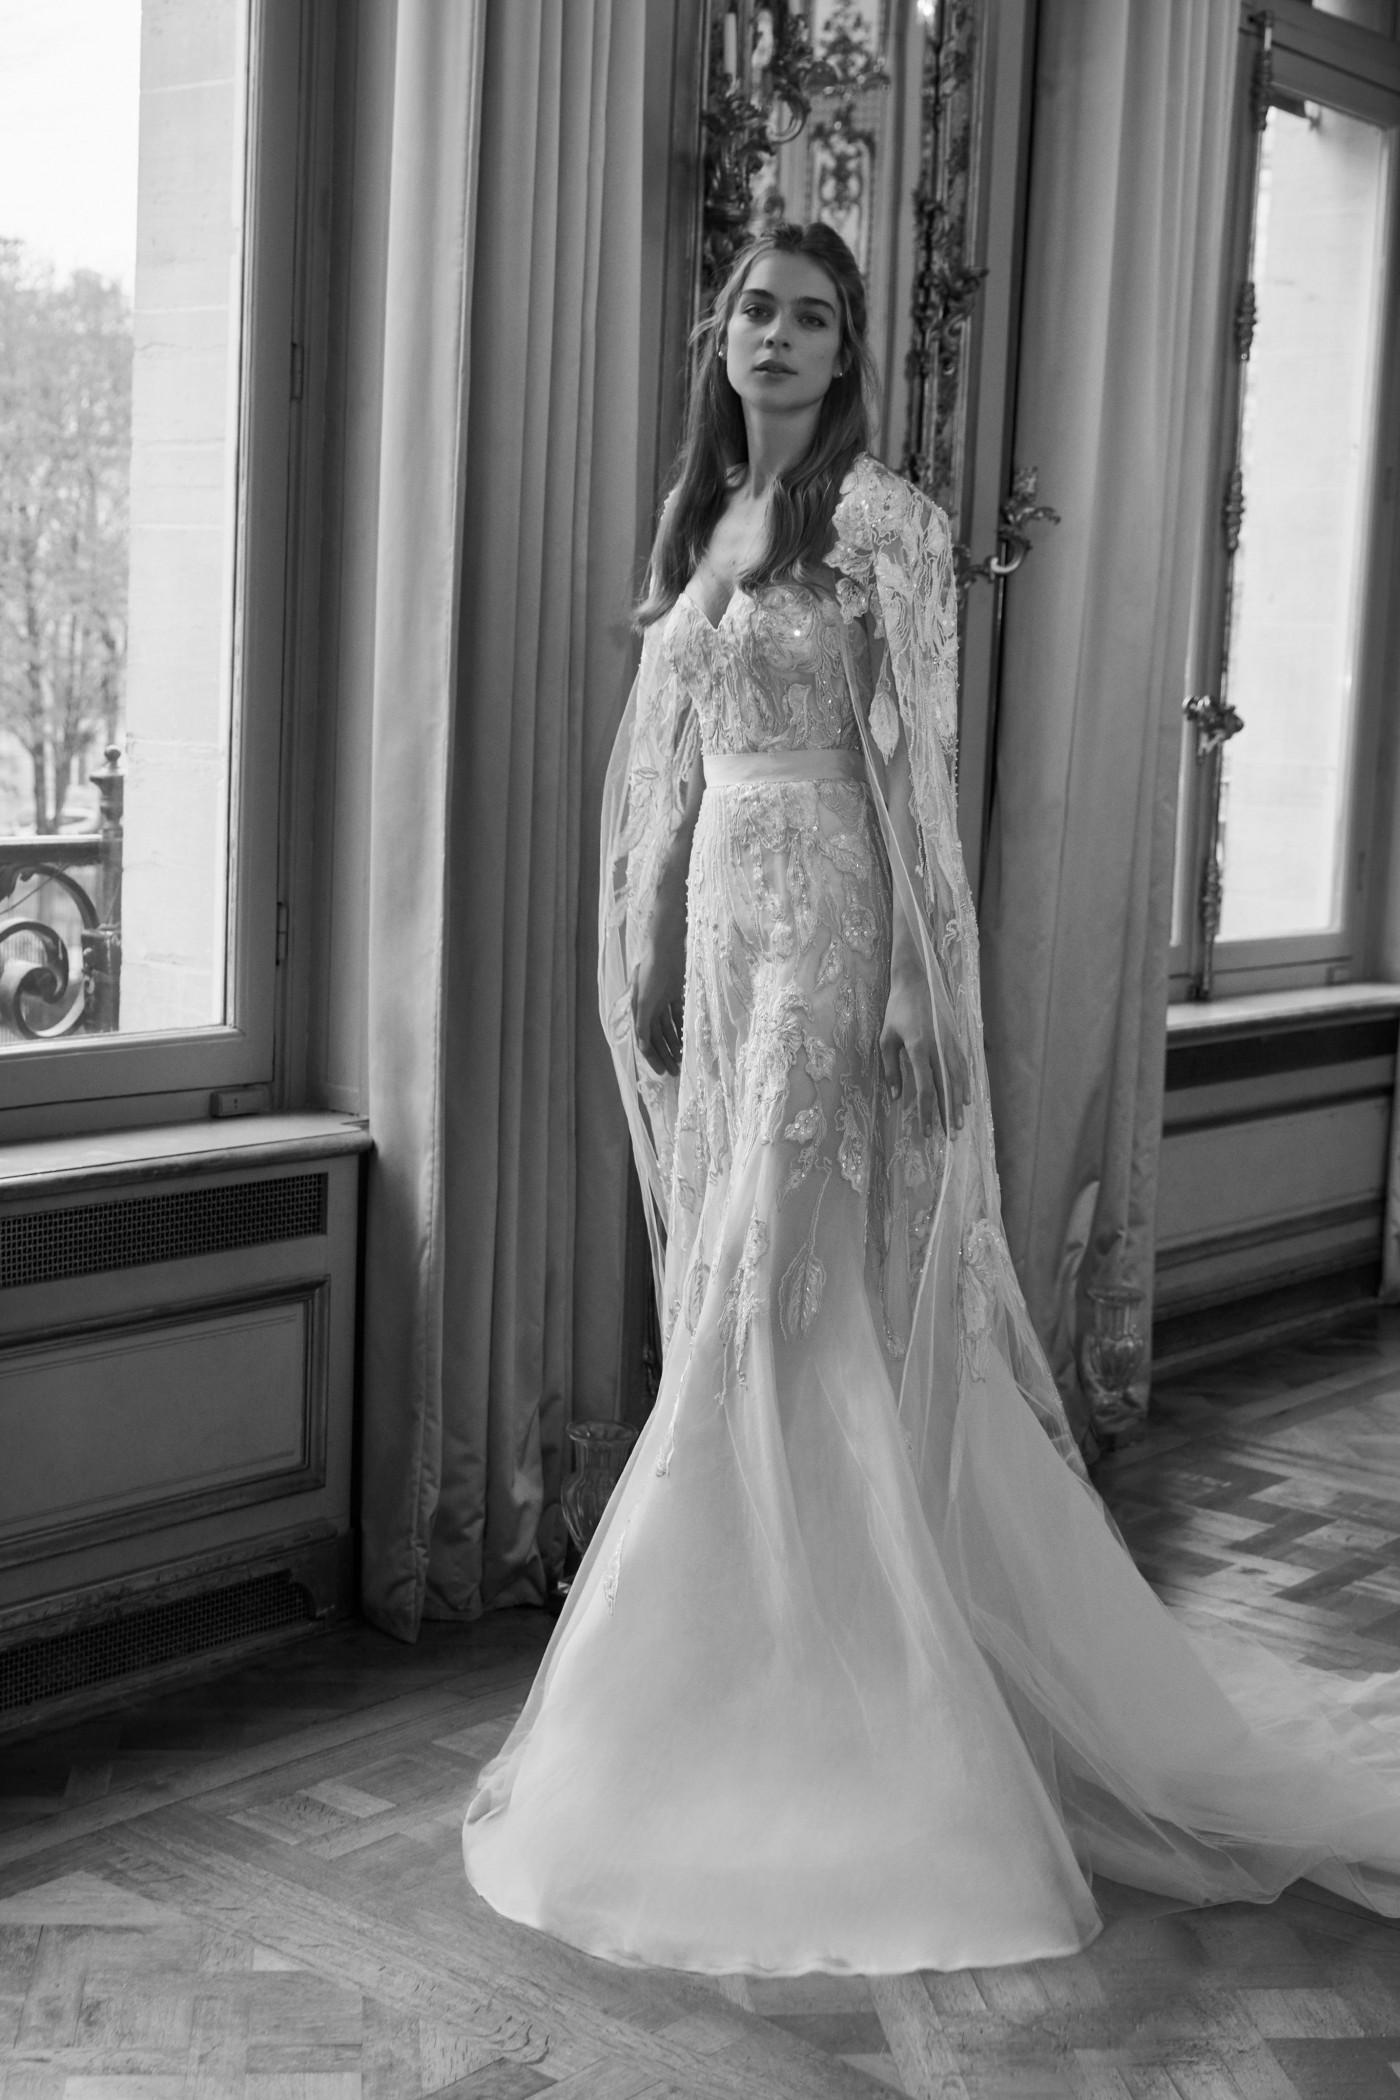 469e830bba60 Phase Four Media – 14 Best Wedding Dress Trends From the Spring 2019 ...